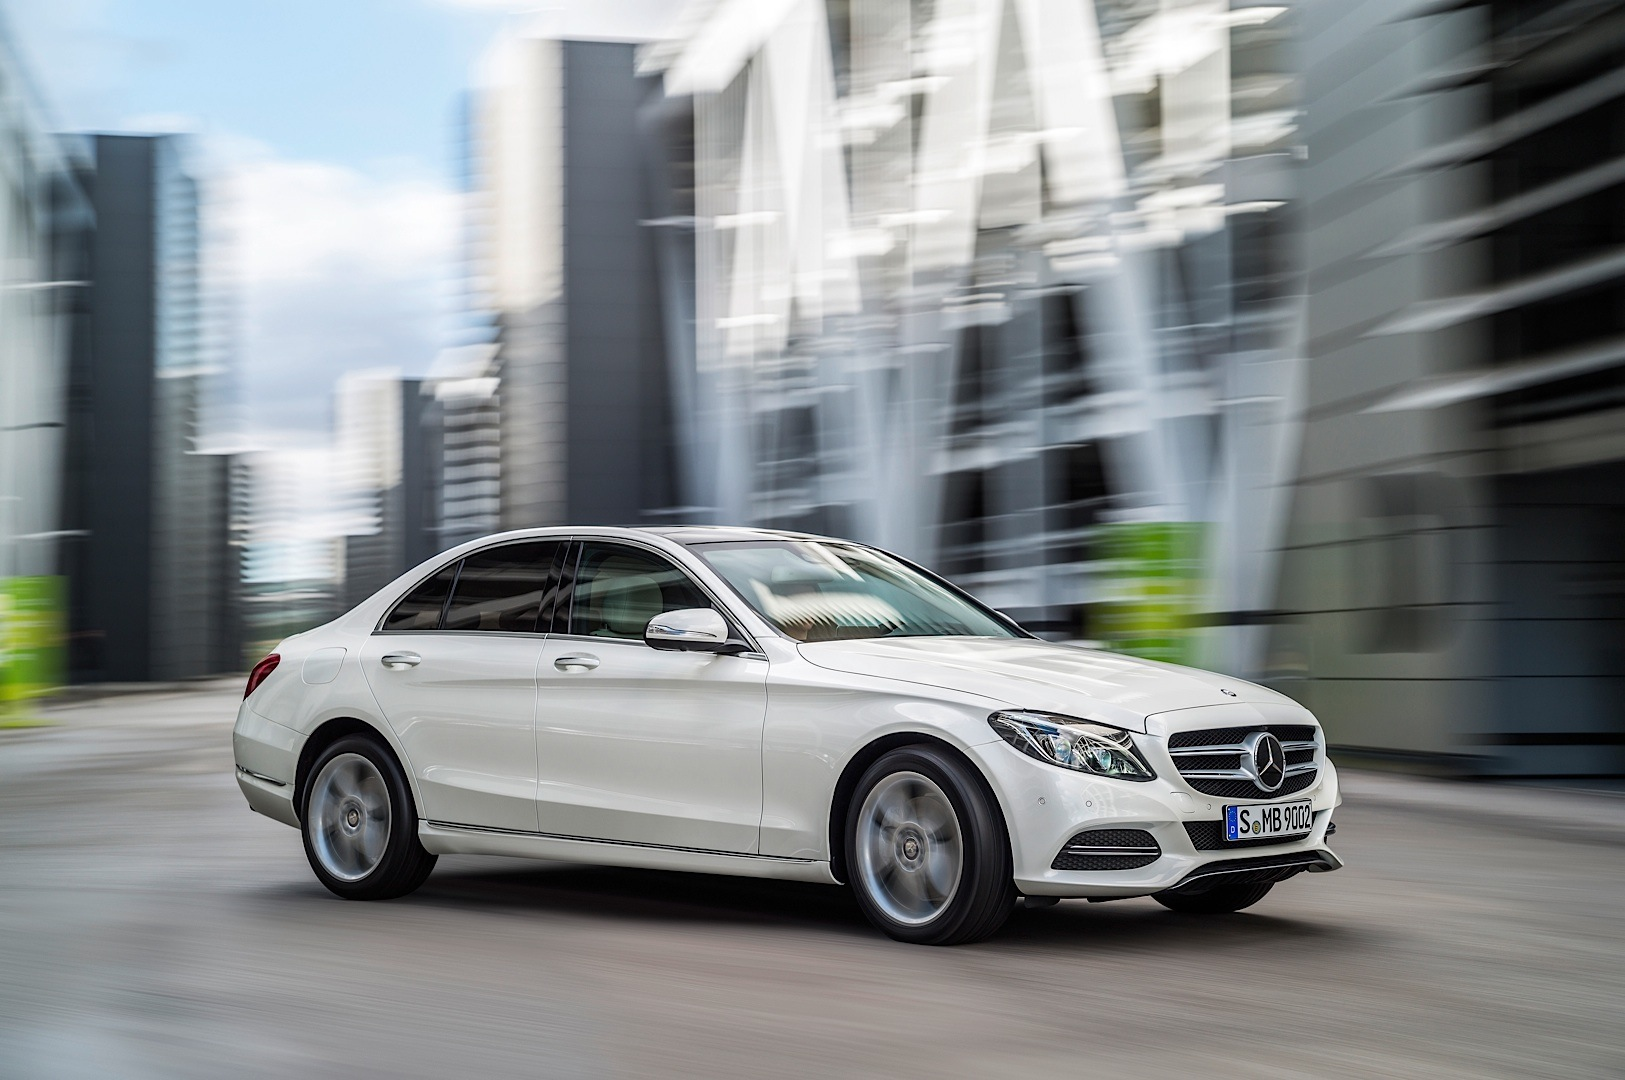 2015 Mercedes-Benz C-Class W205 Gets Priced in The UK ...